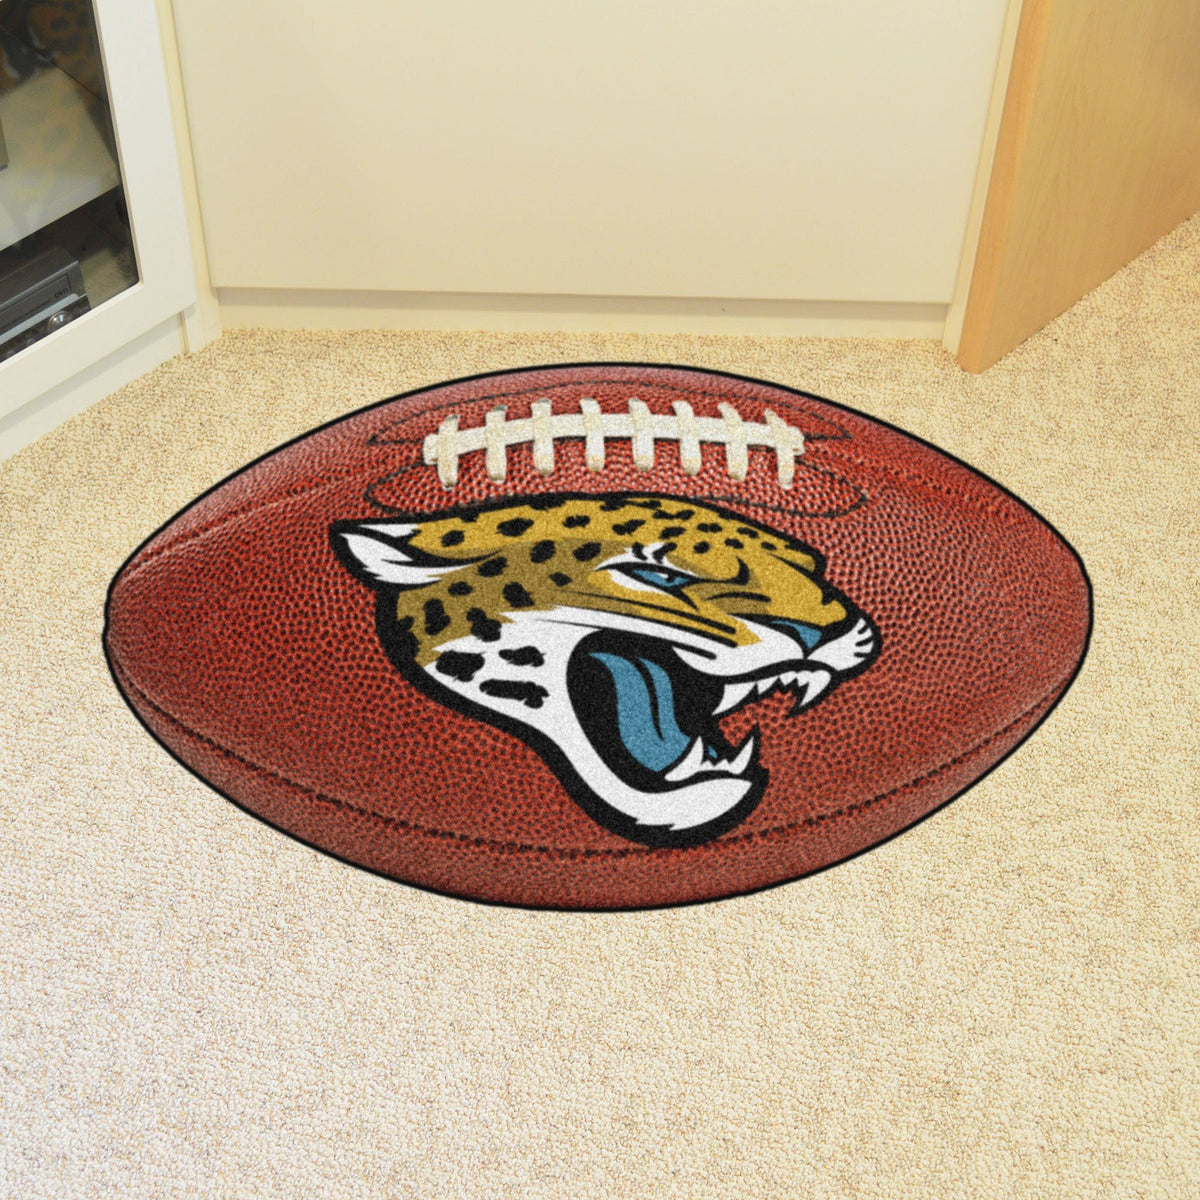 NFL - Football Mat NFL Mats, Custom Shape Rugs, Football Mat, NFL, Home Fan Mats Jacksonville Jaguars